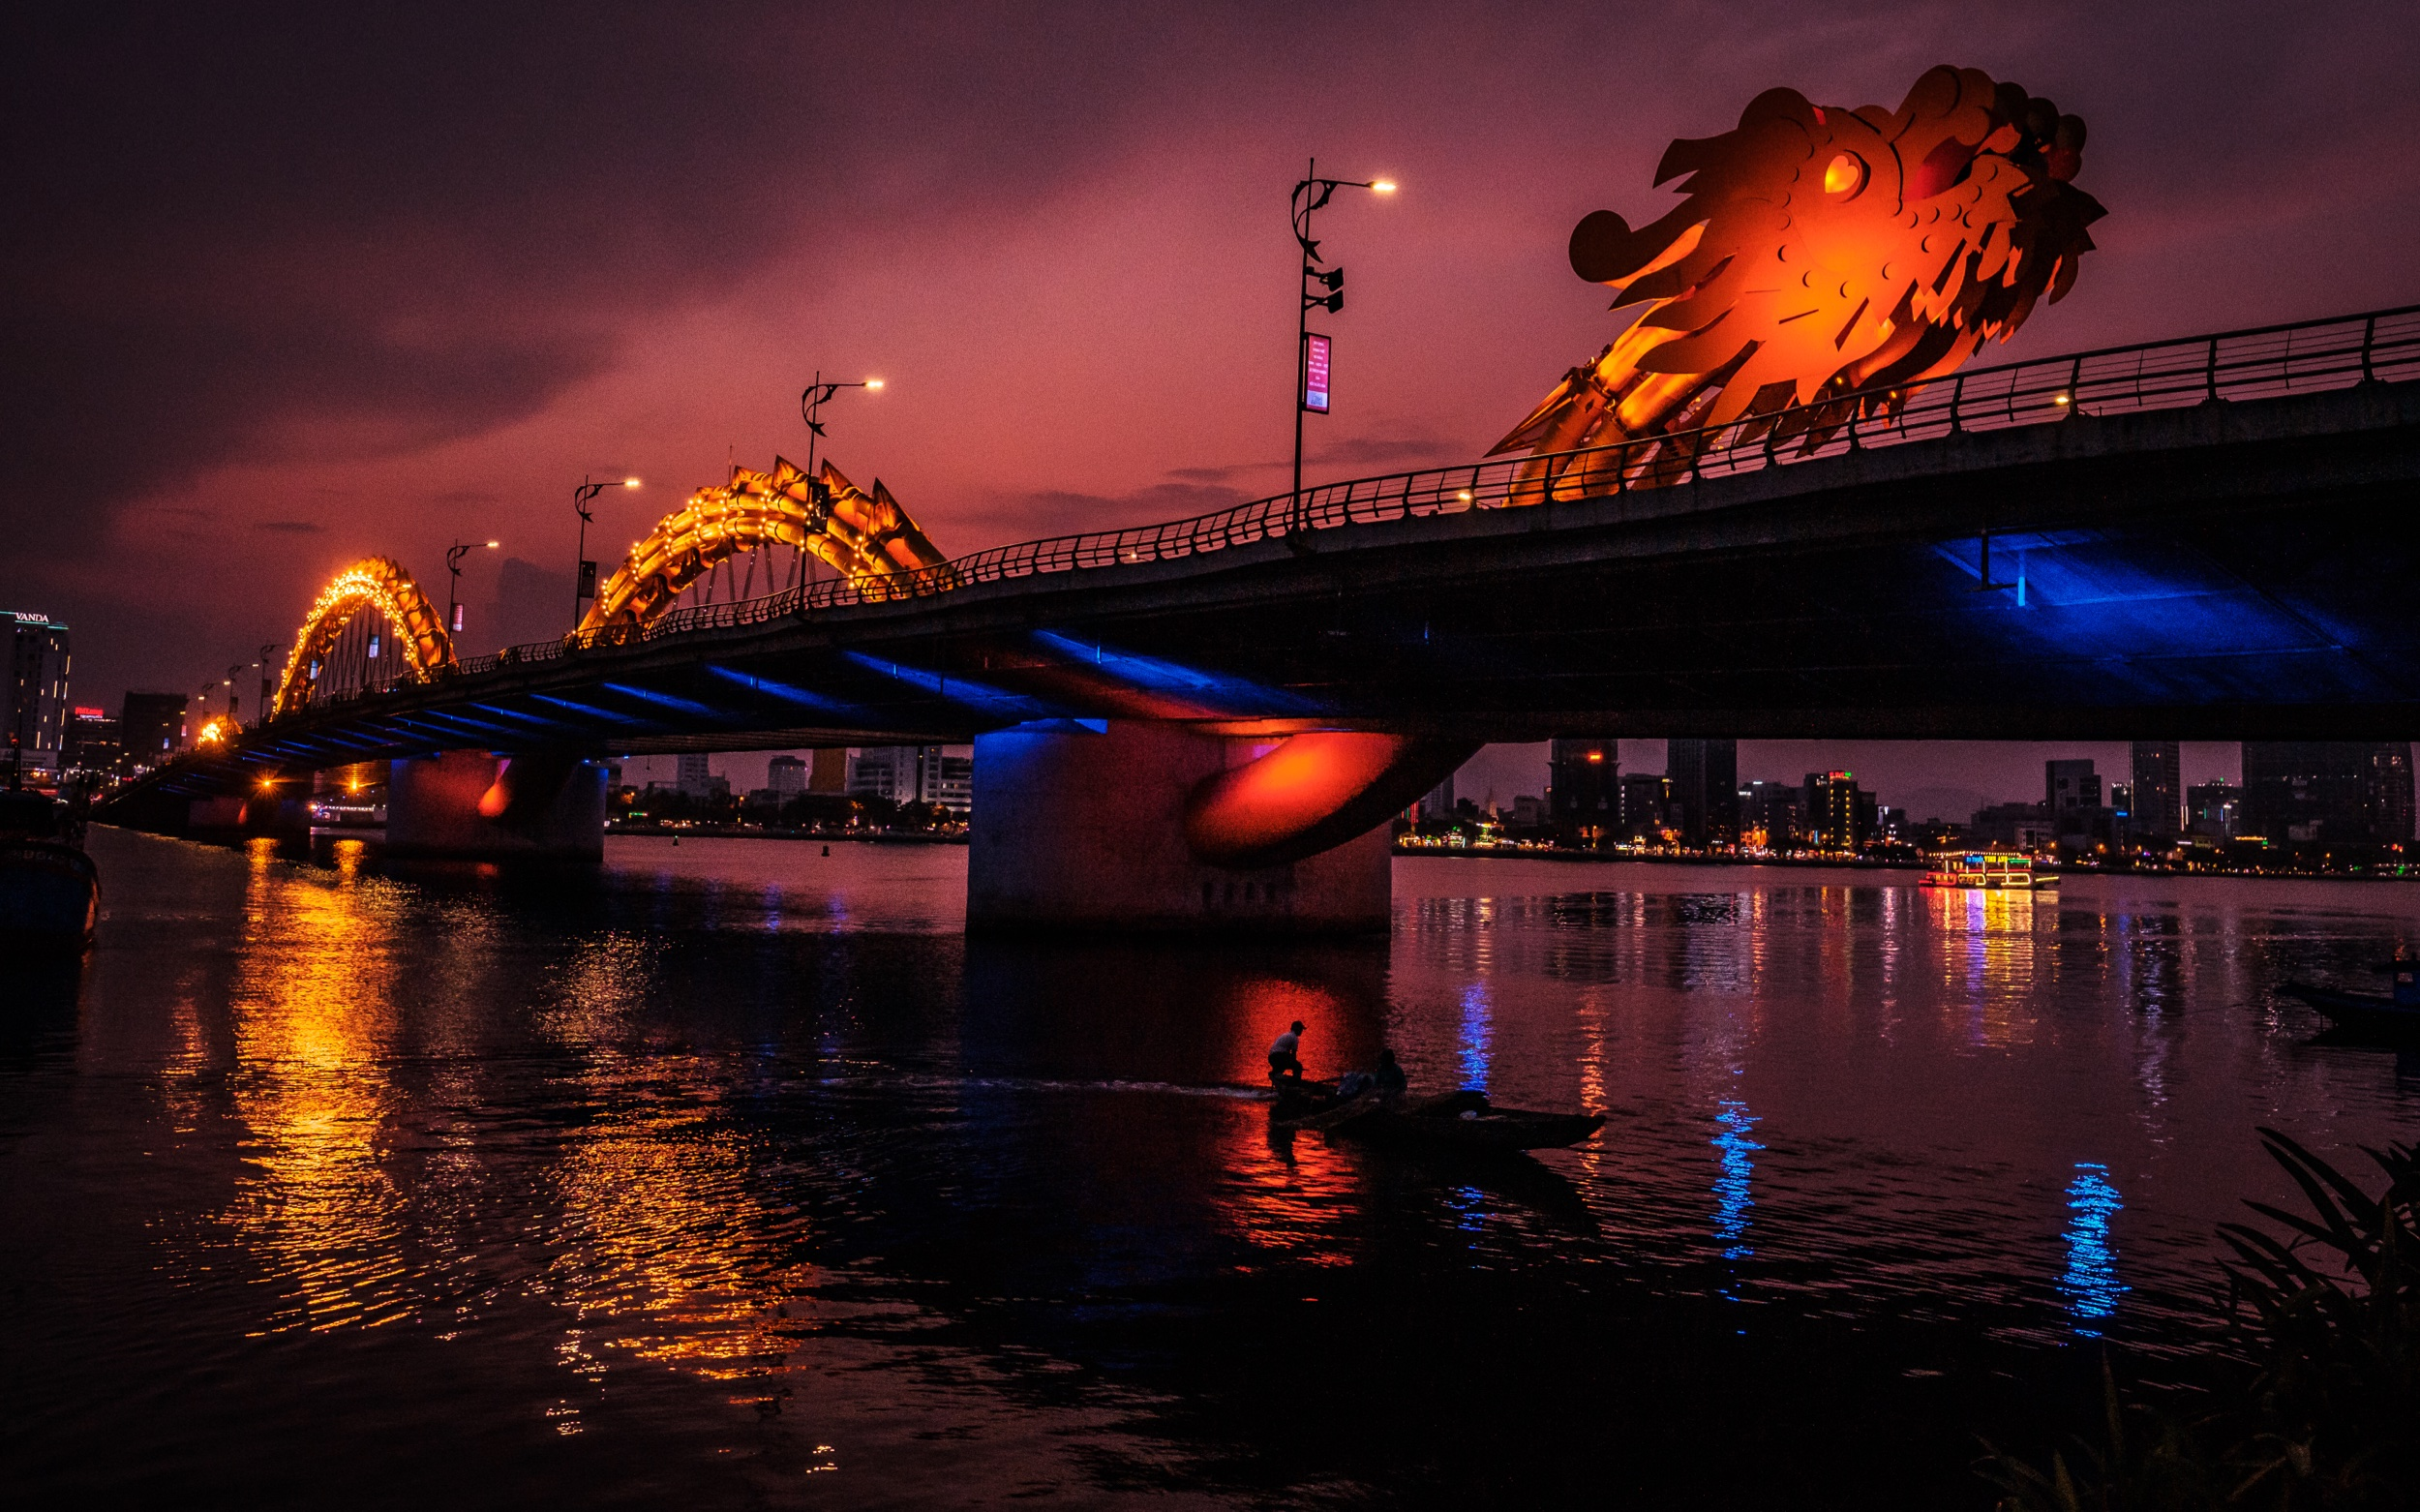 Dragon Bridge, CẦU RỒNG, Da Nang